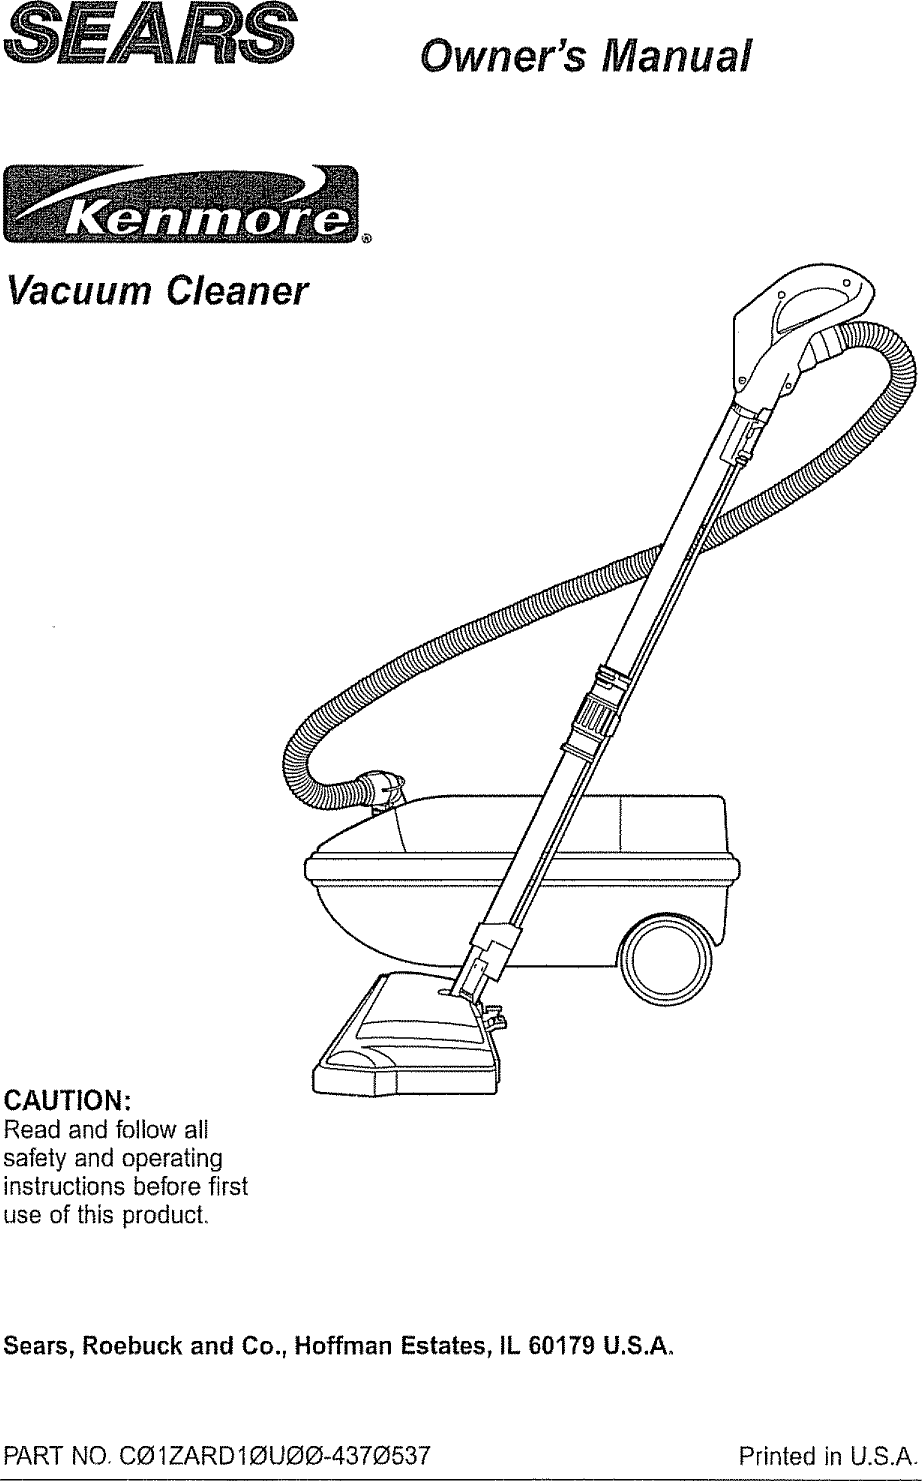 Kenmore 11626412690 User Manual VACUUM CLEANER Manuals And